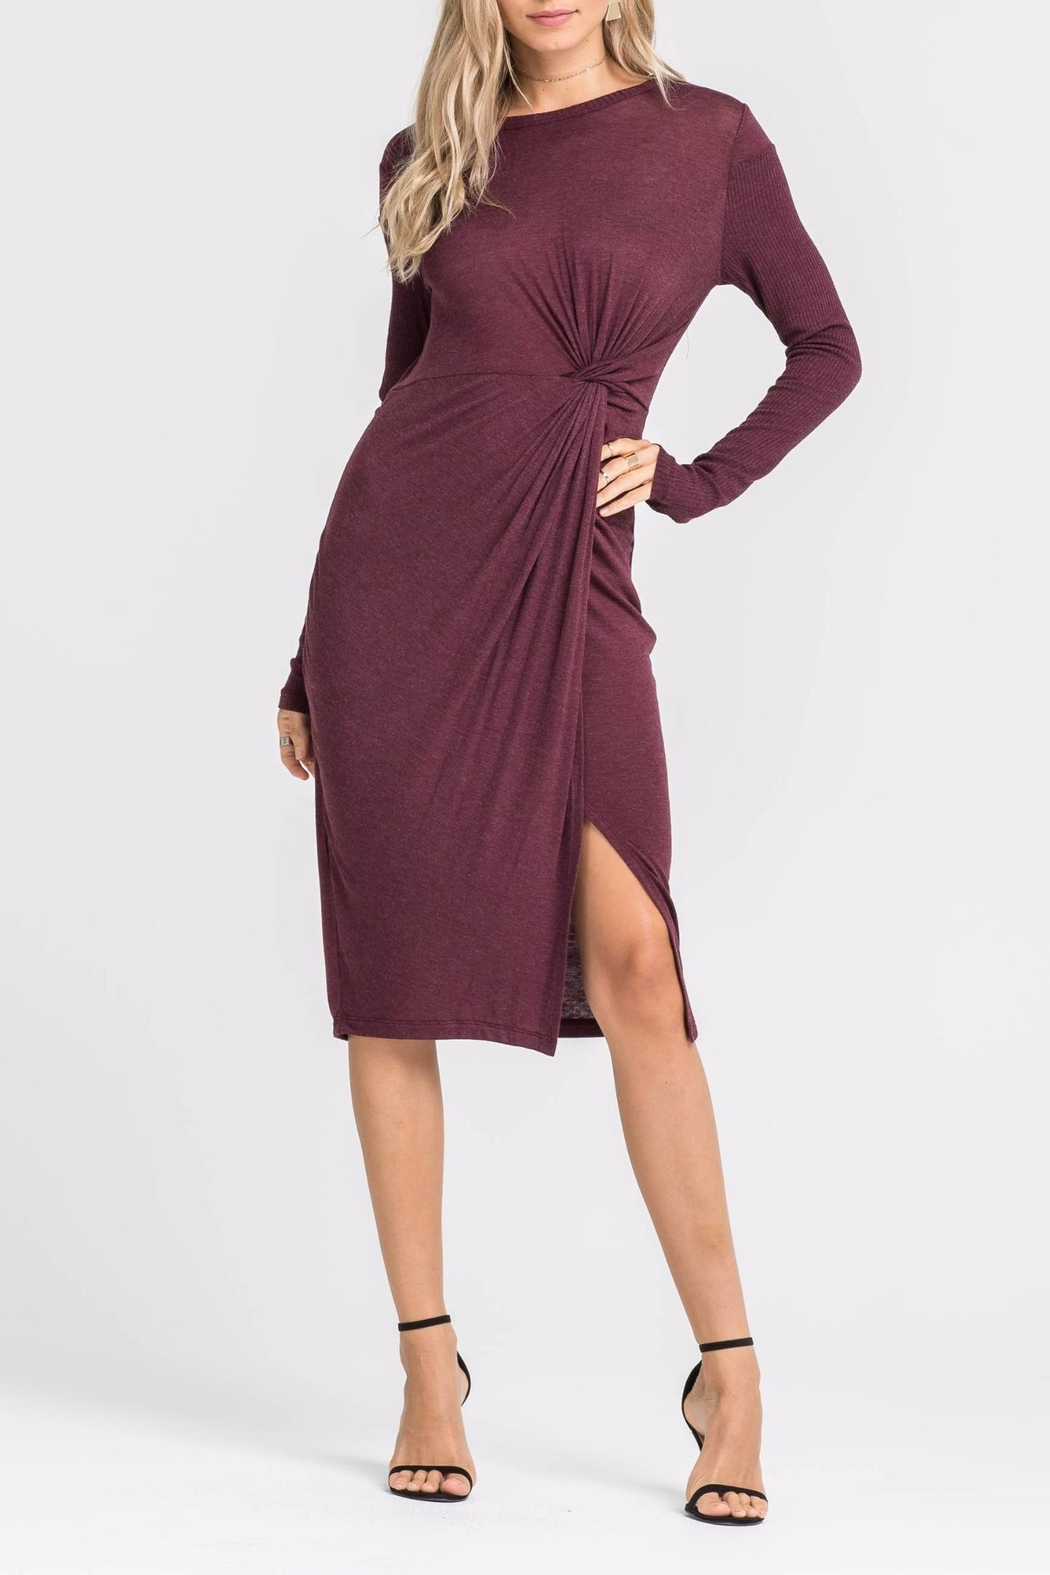 Lush Knotted Front Dress - Main Image